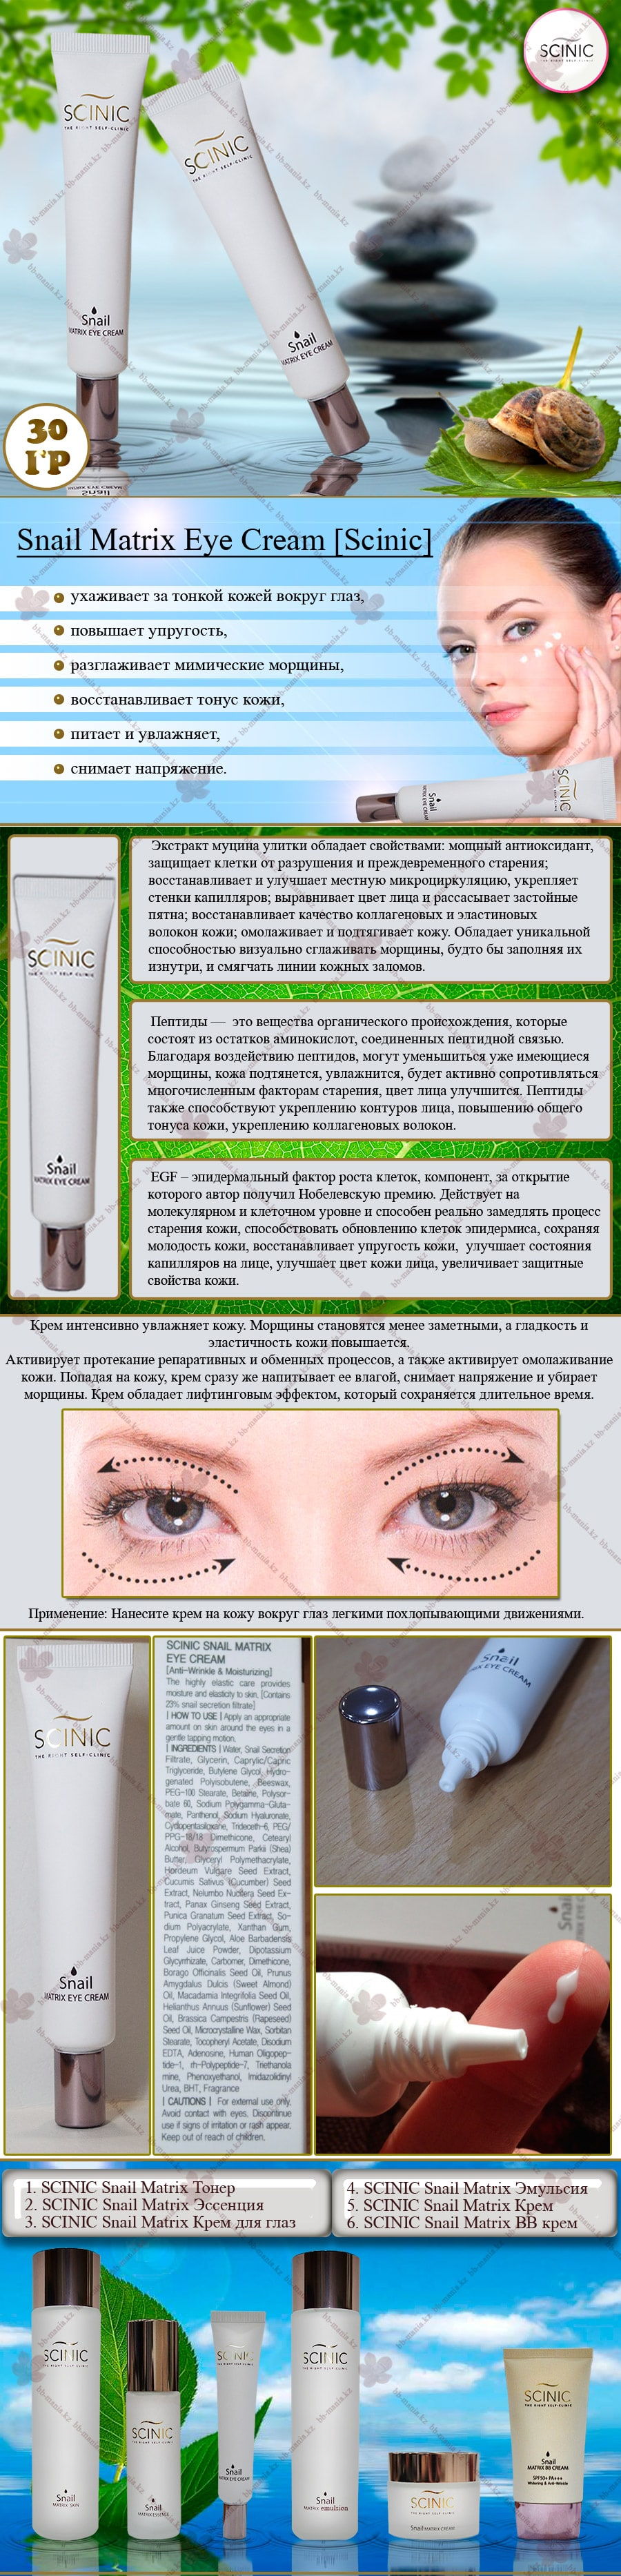 Snail-Matrix-Eye-Cream-[Scinic]-min